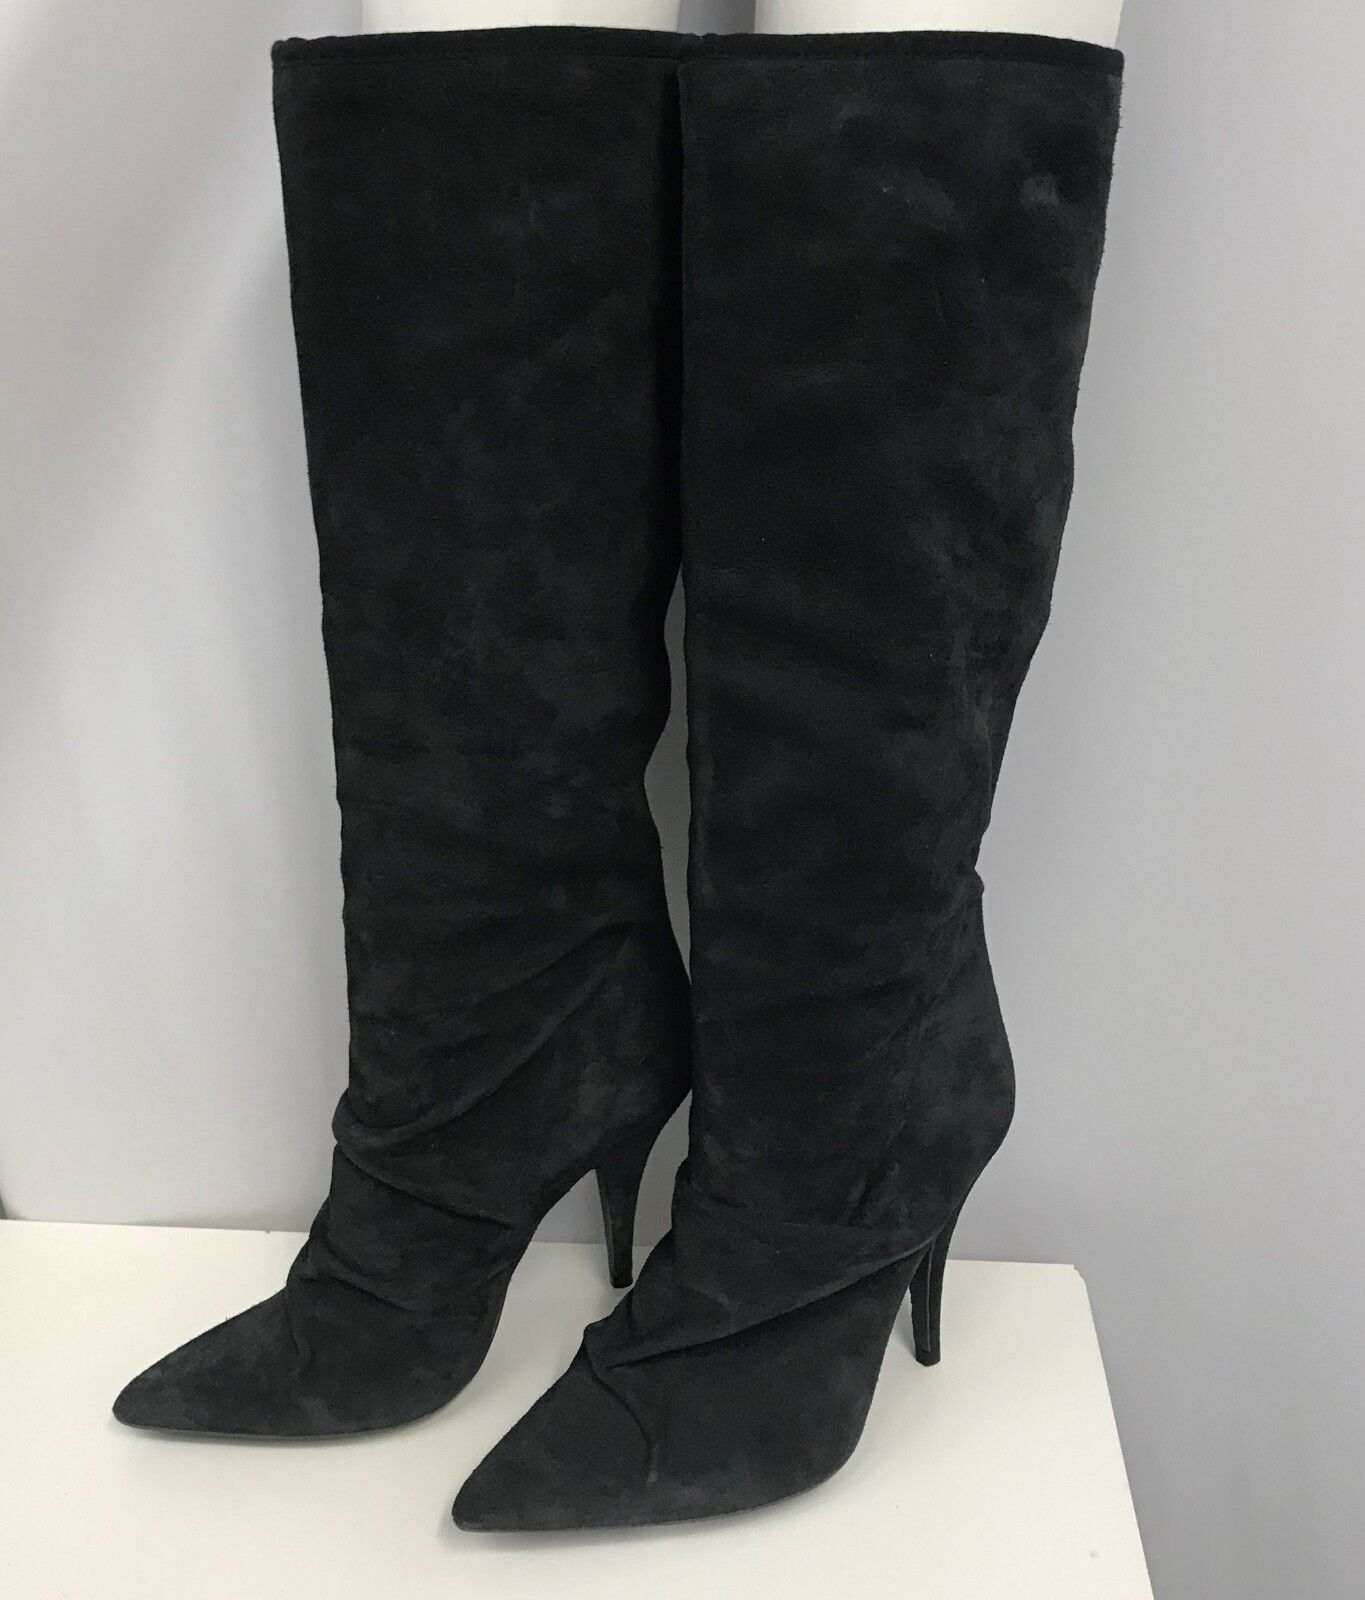 PEDRO GARCIA SUEDE BOOTS GREY NWT  600.00 KNEE HIGH RUCHED SIZE 38 1 2 8 1 2 B